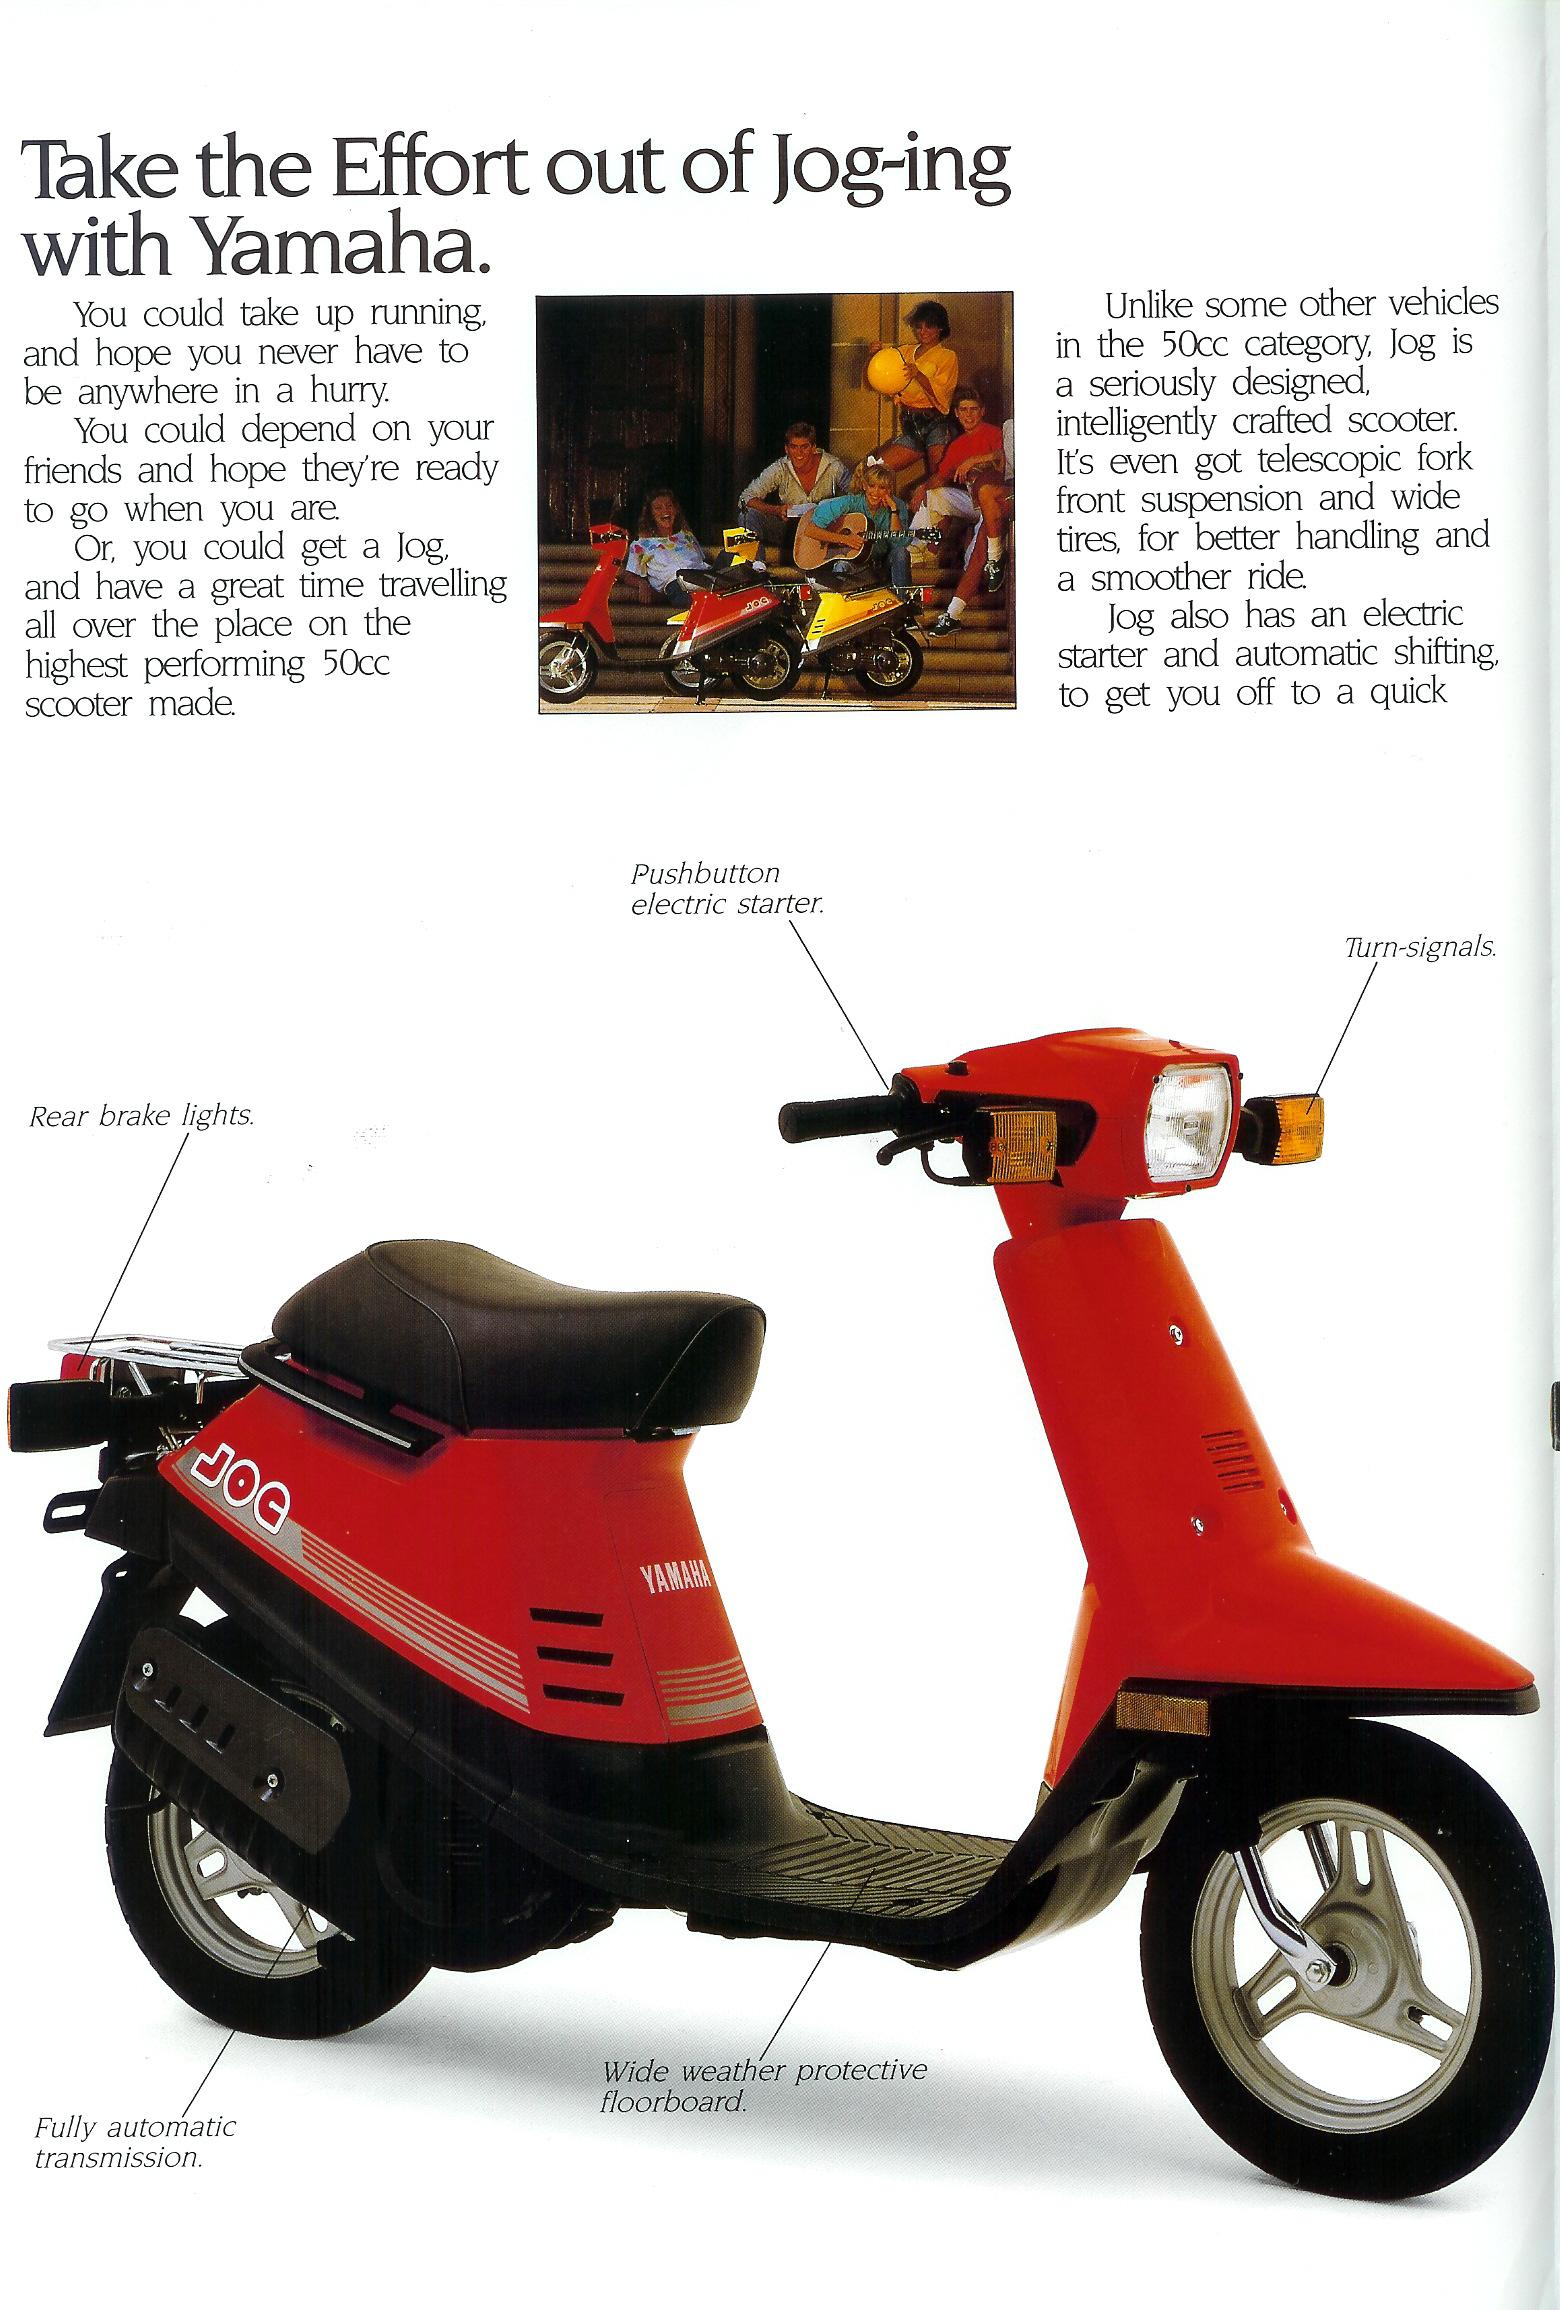 General Yamaha Scooter Information 200 Isuzu Engine Vacuum Diagram Full Size